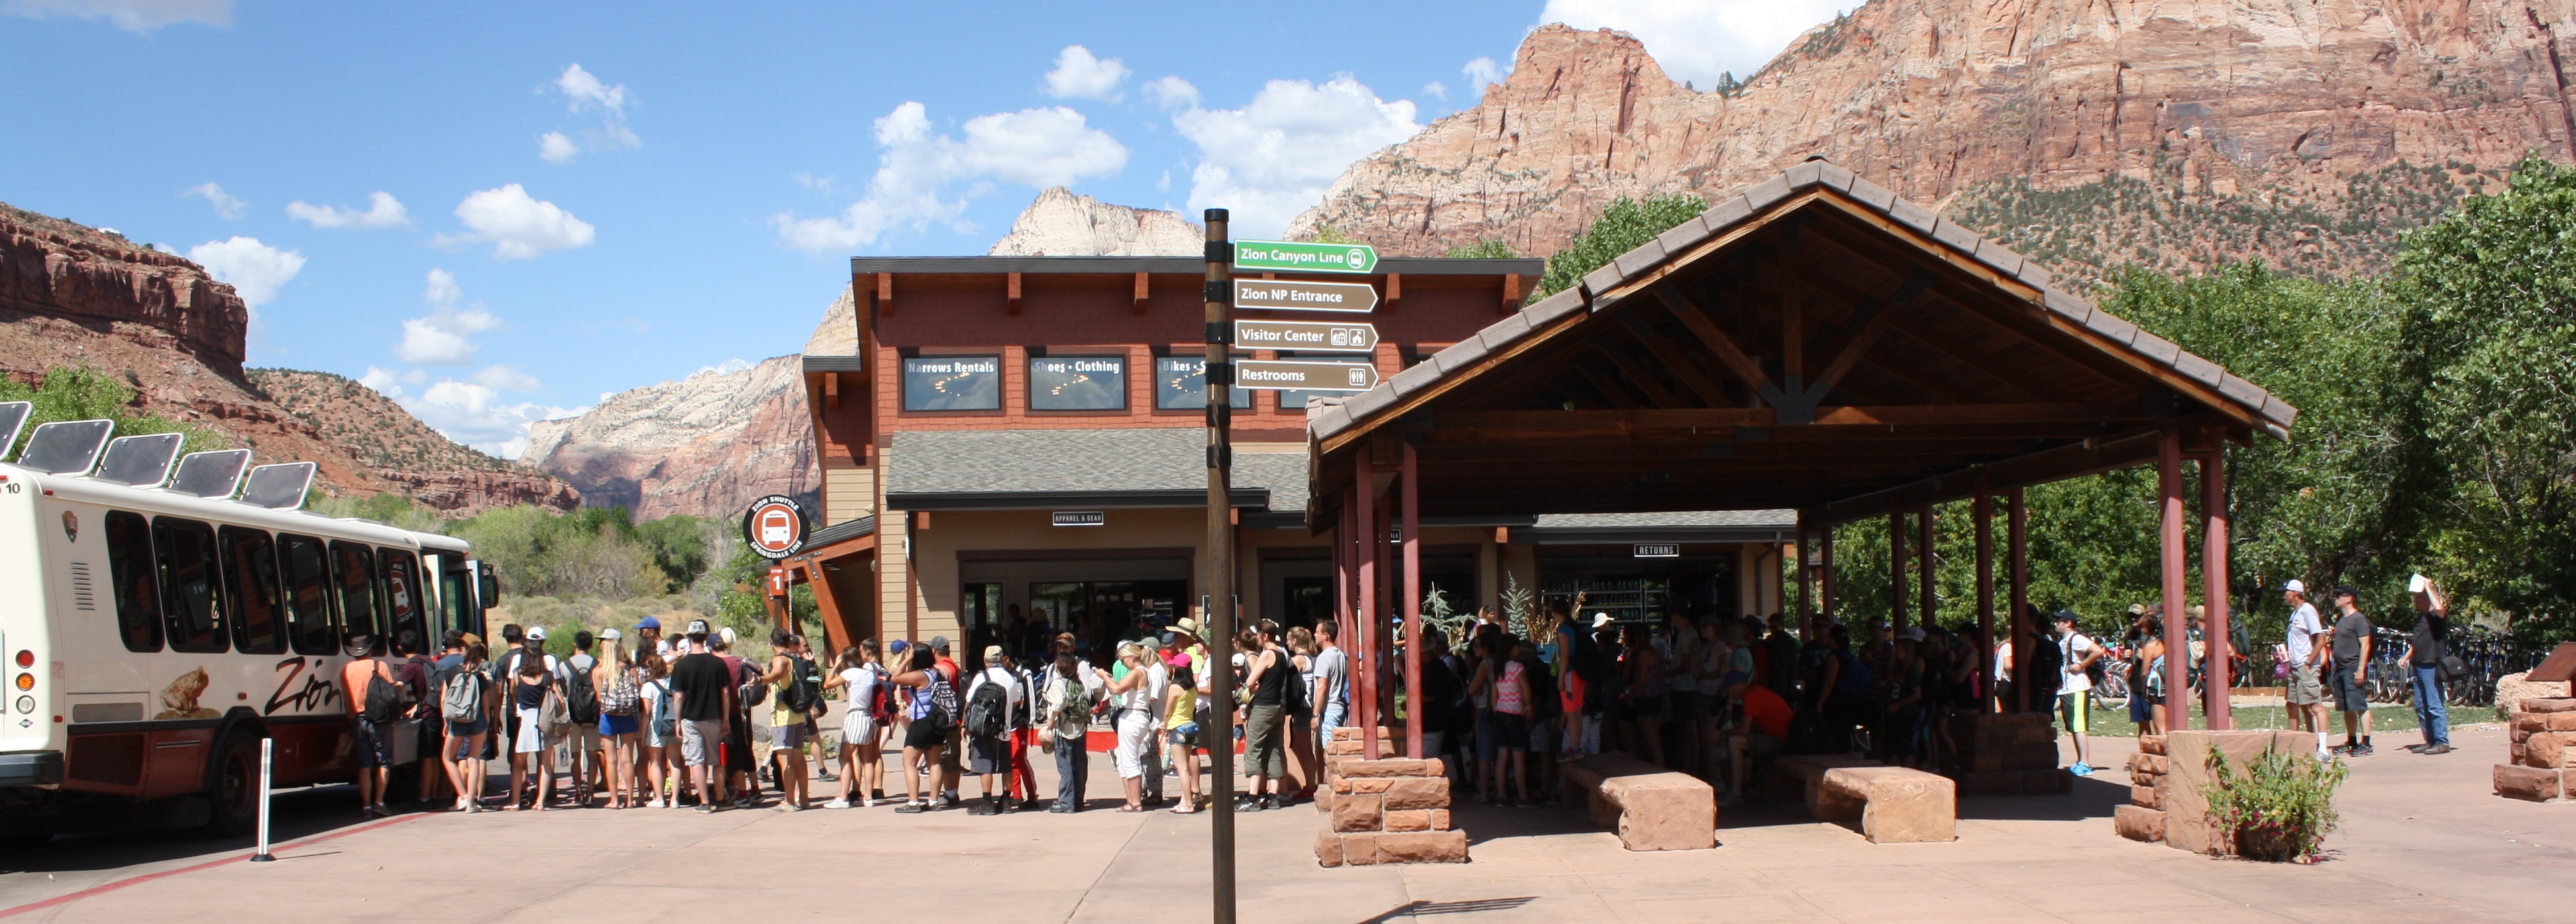 Long line to board the Springdale Shuttle at Zion's pedestrian entrance, Springdale, Utah, July 20, 2016 | Photo by Reuben Wadsworth, St. George News